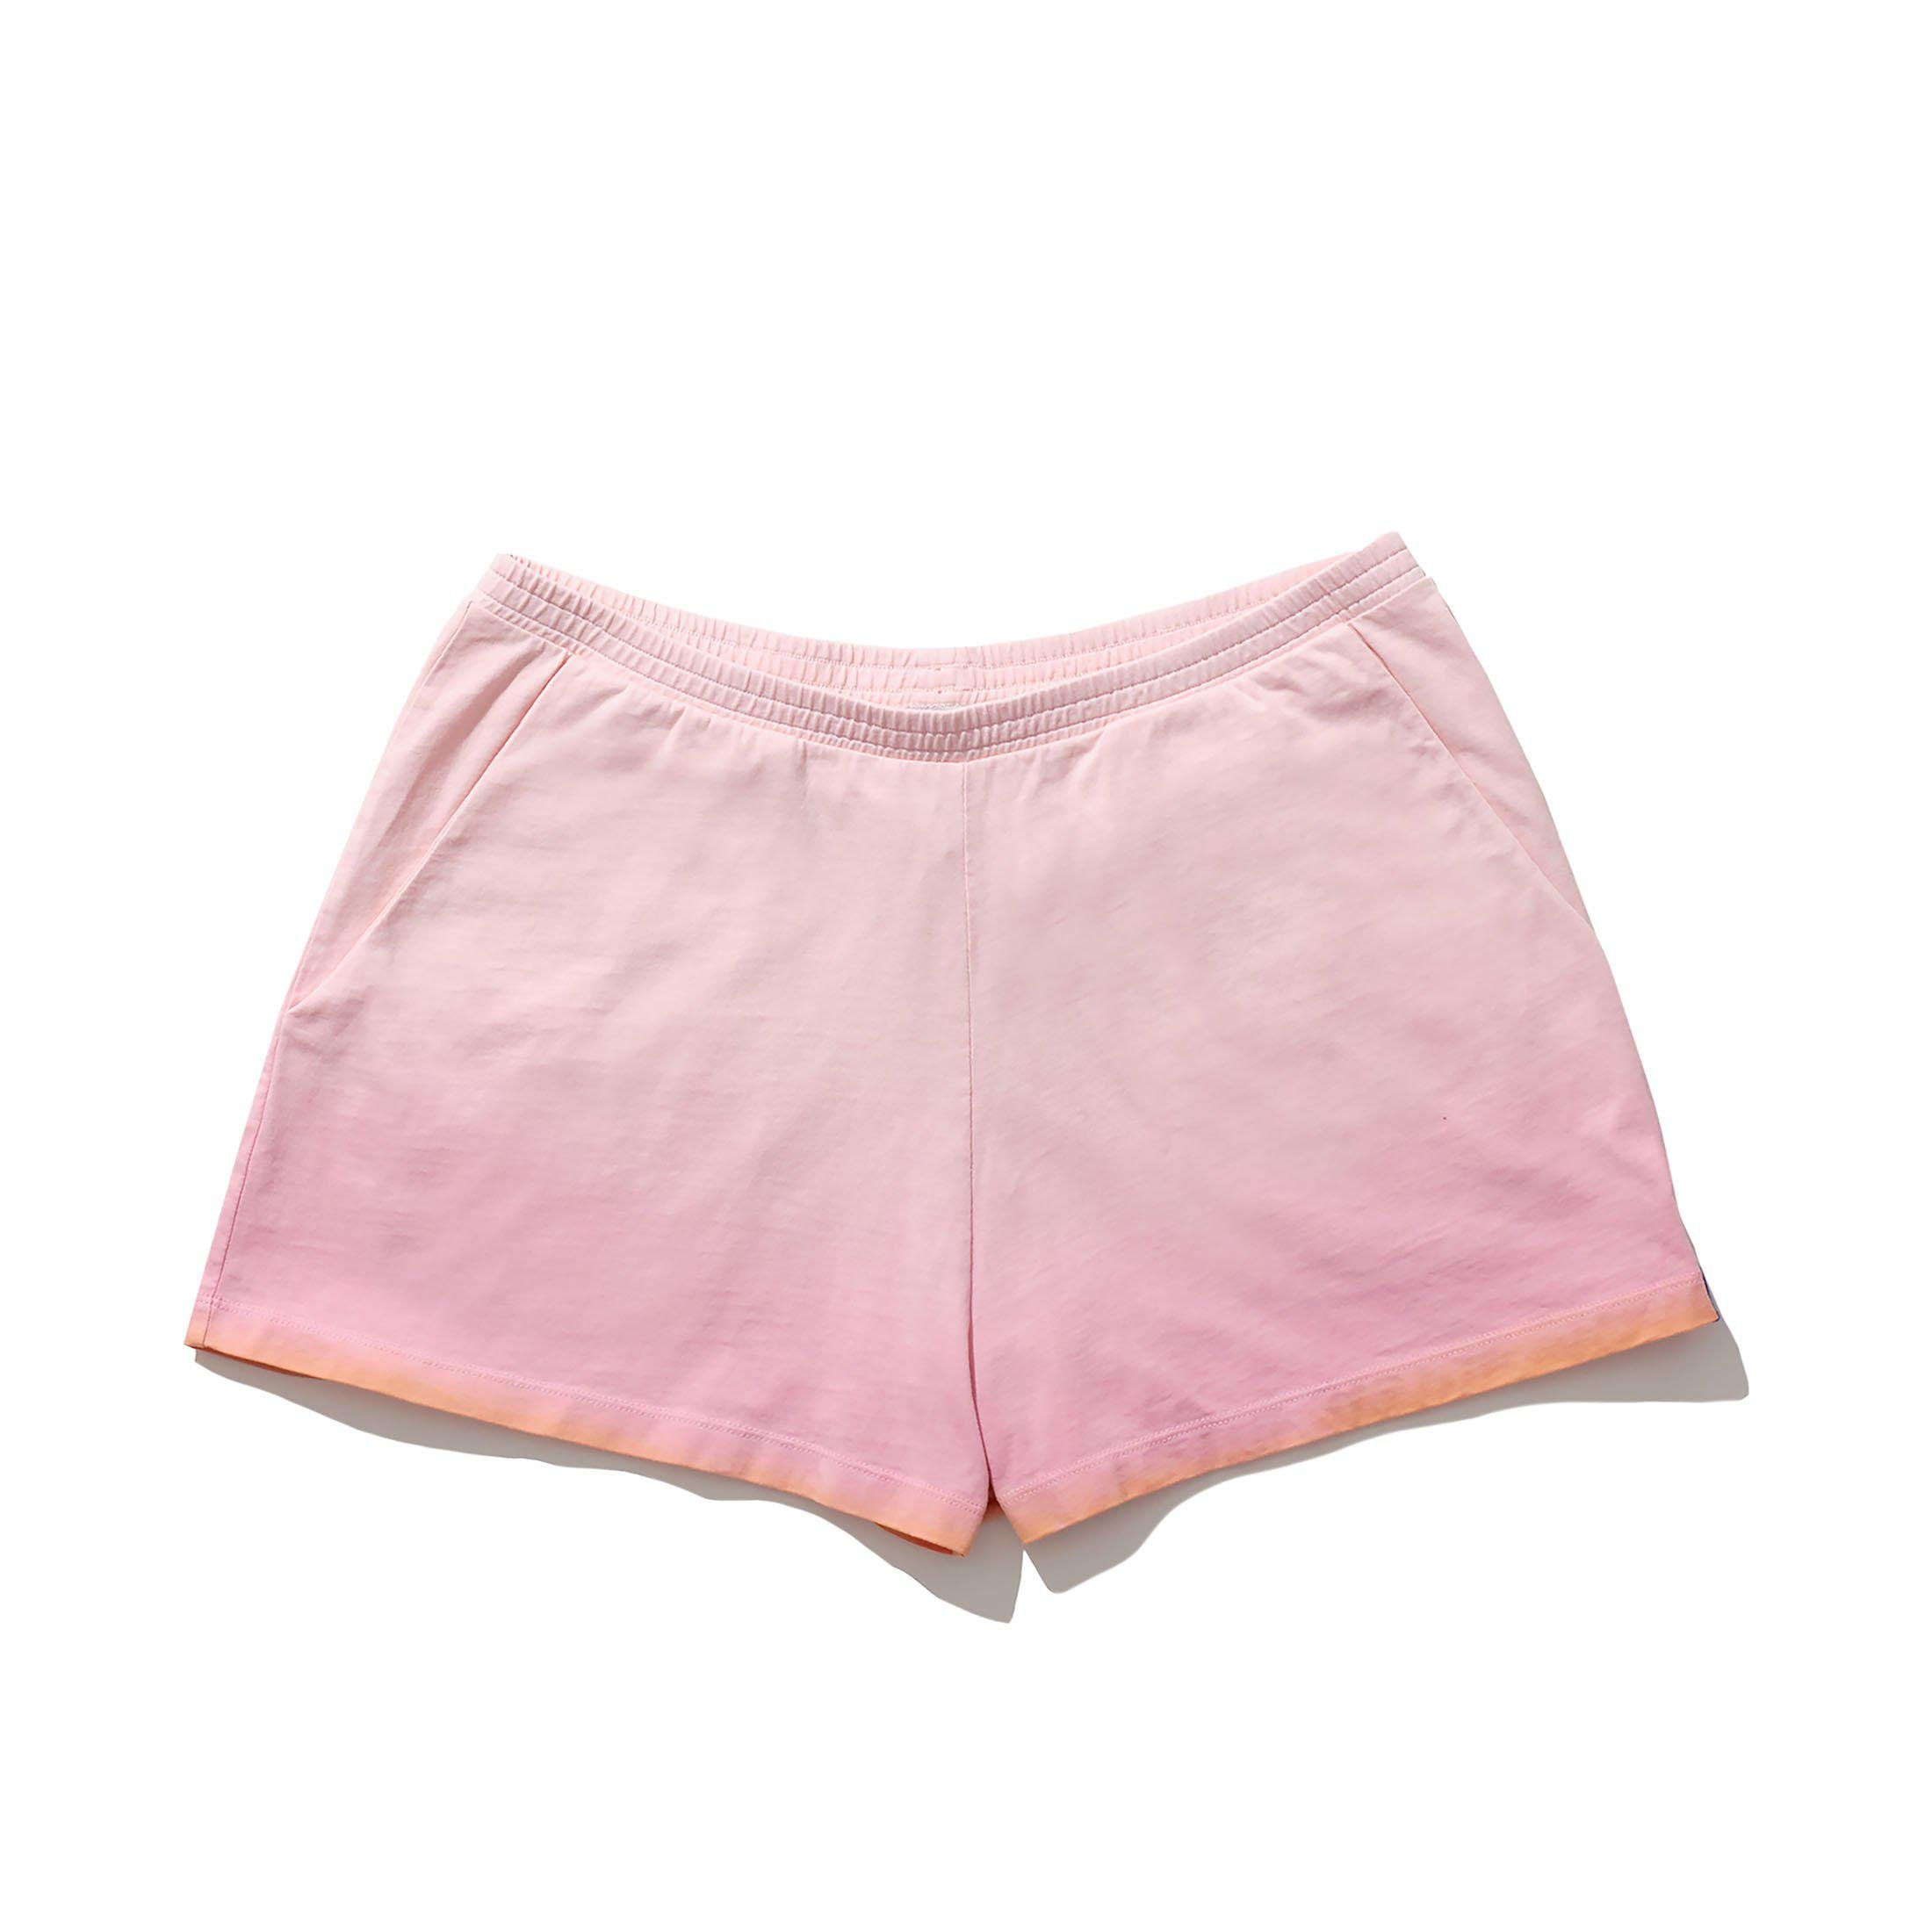 The Organic Ombre Short - Pink/Gold